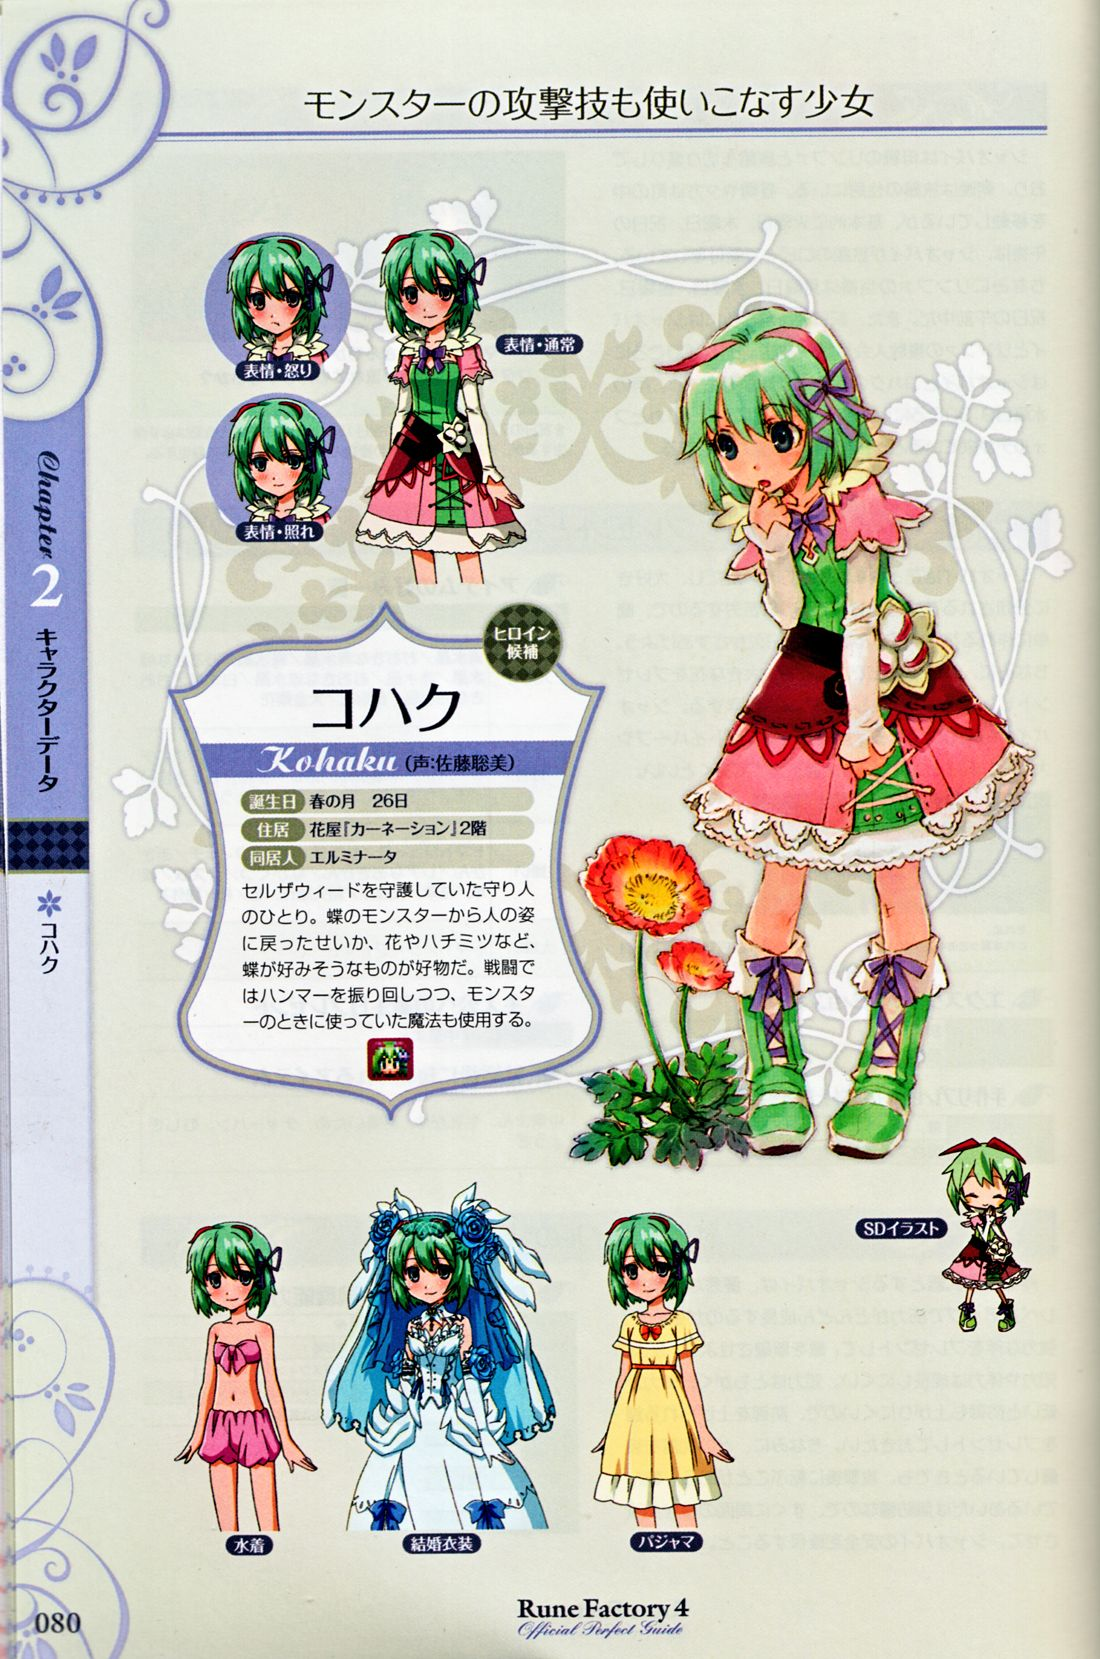 Rune factory 4 character guide